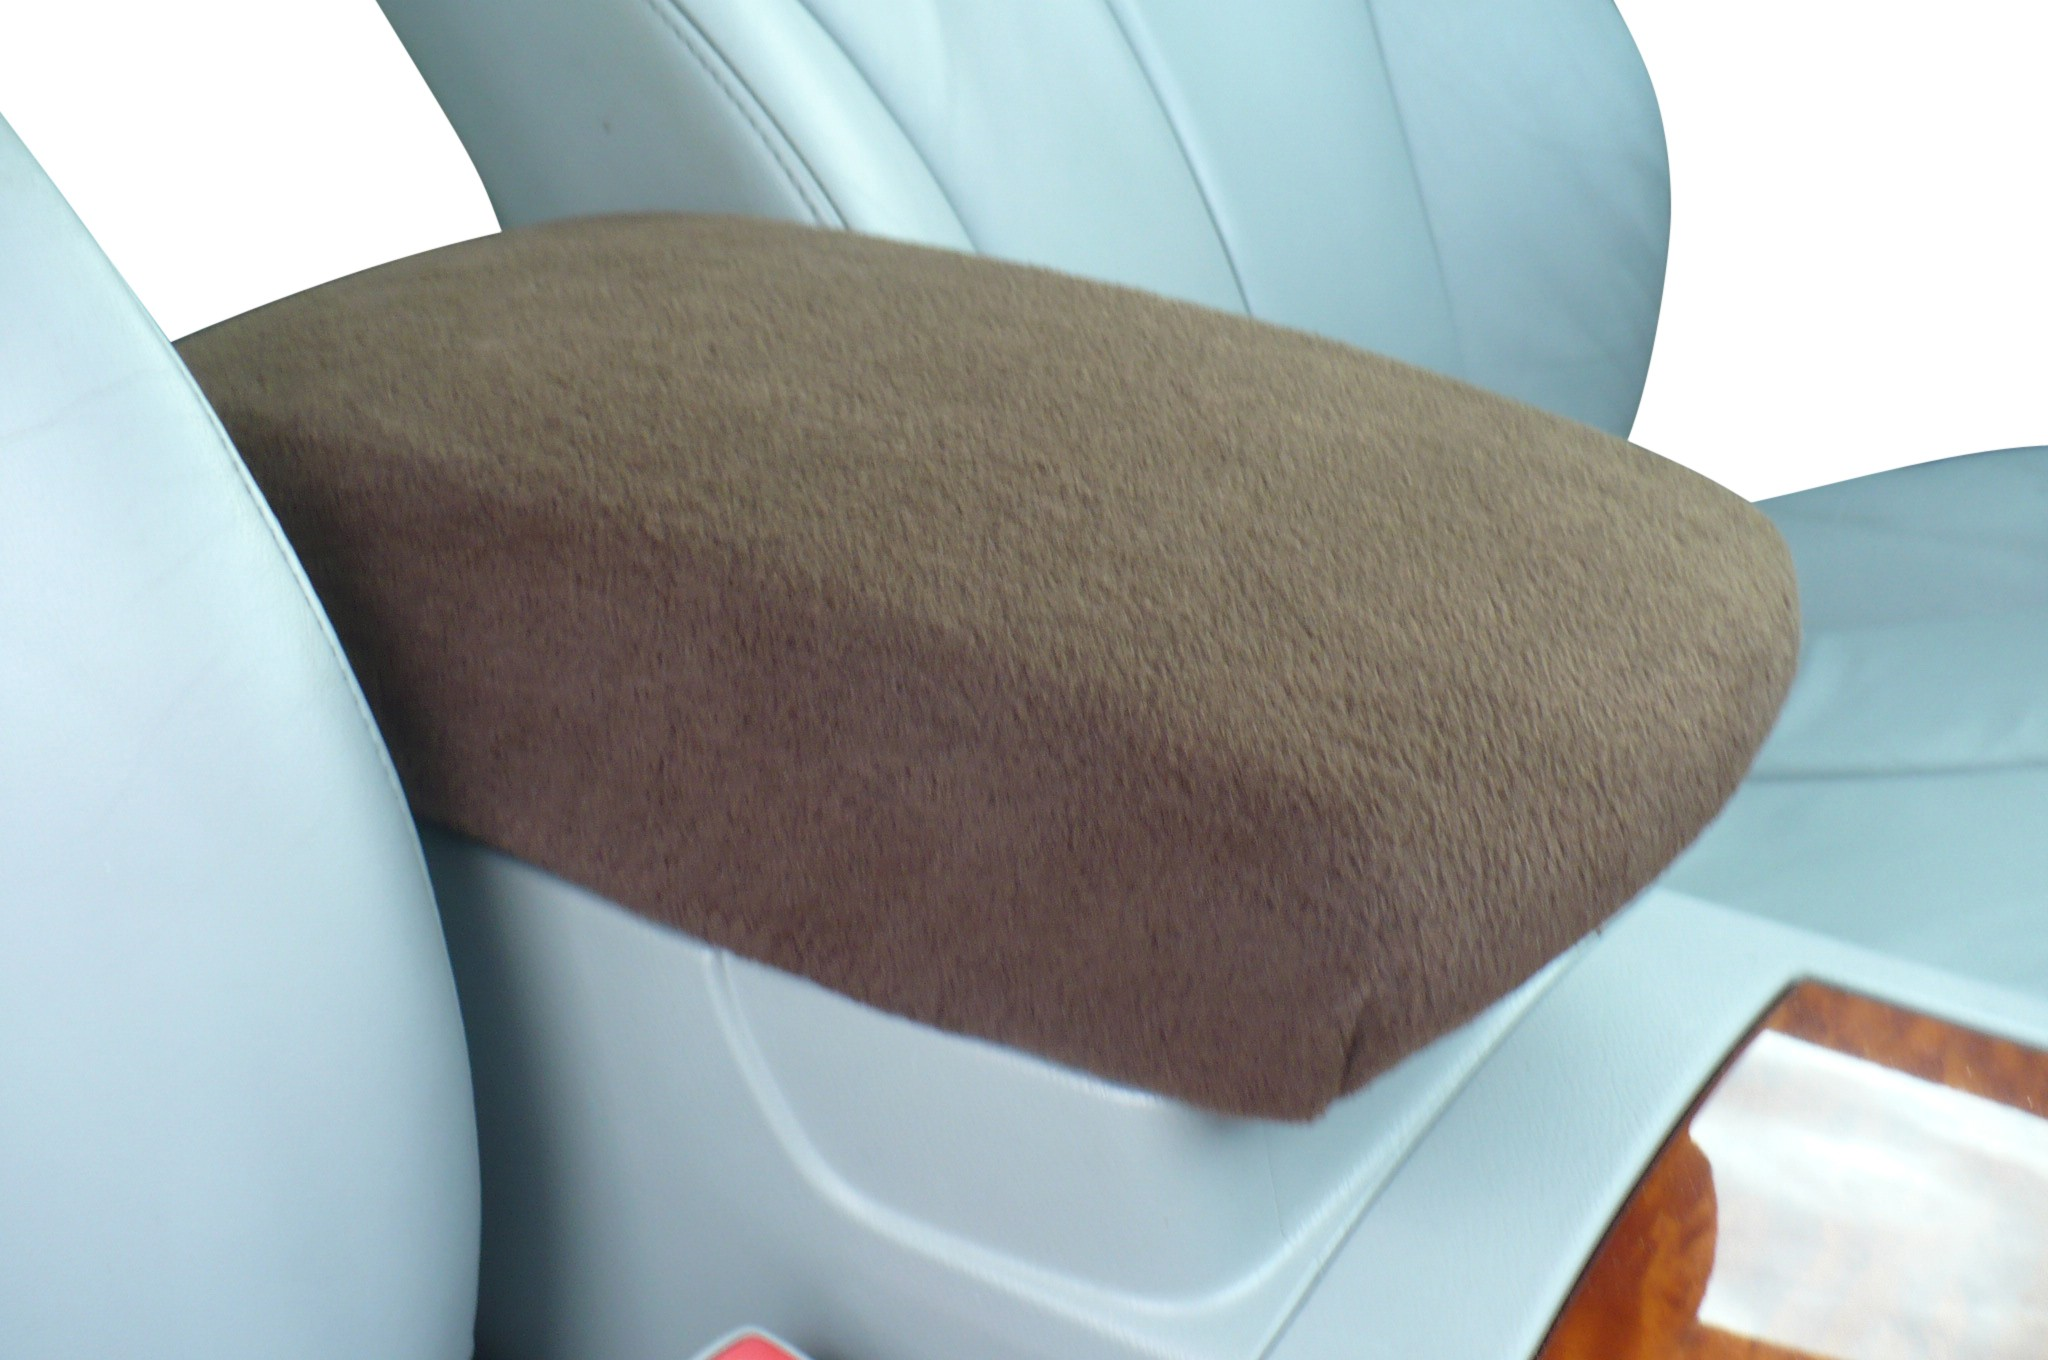 Chevy Colorado 2015-19 - Fleece Material